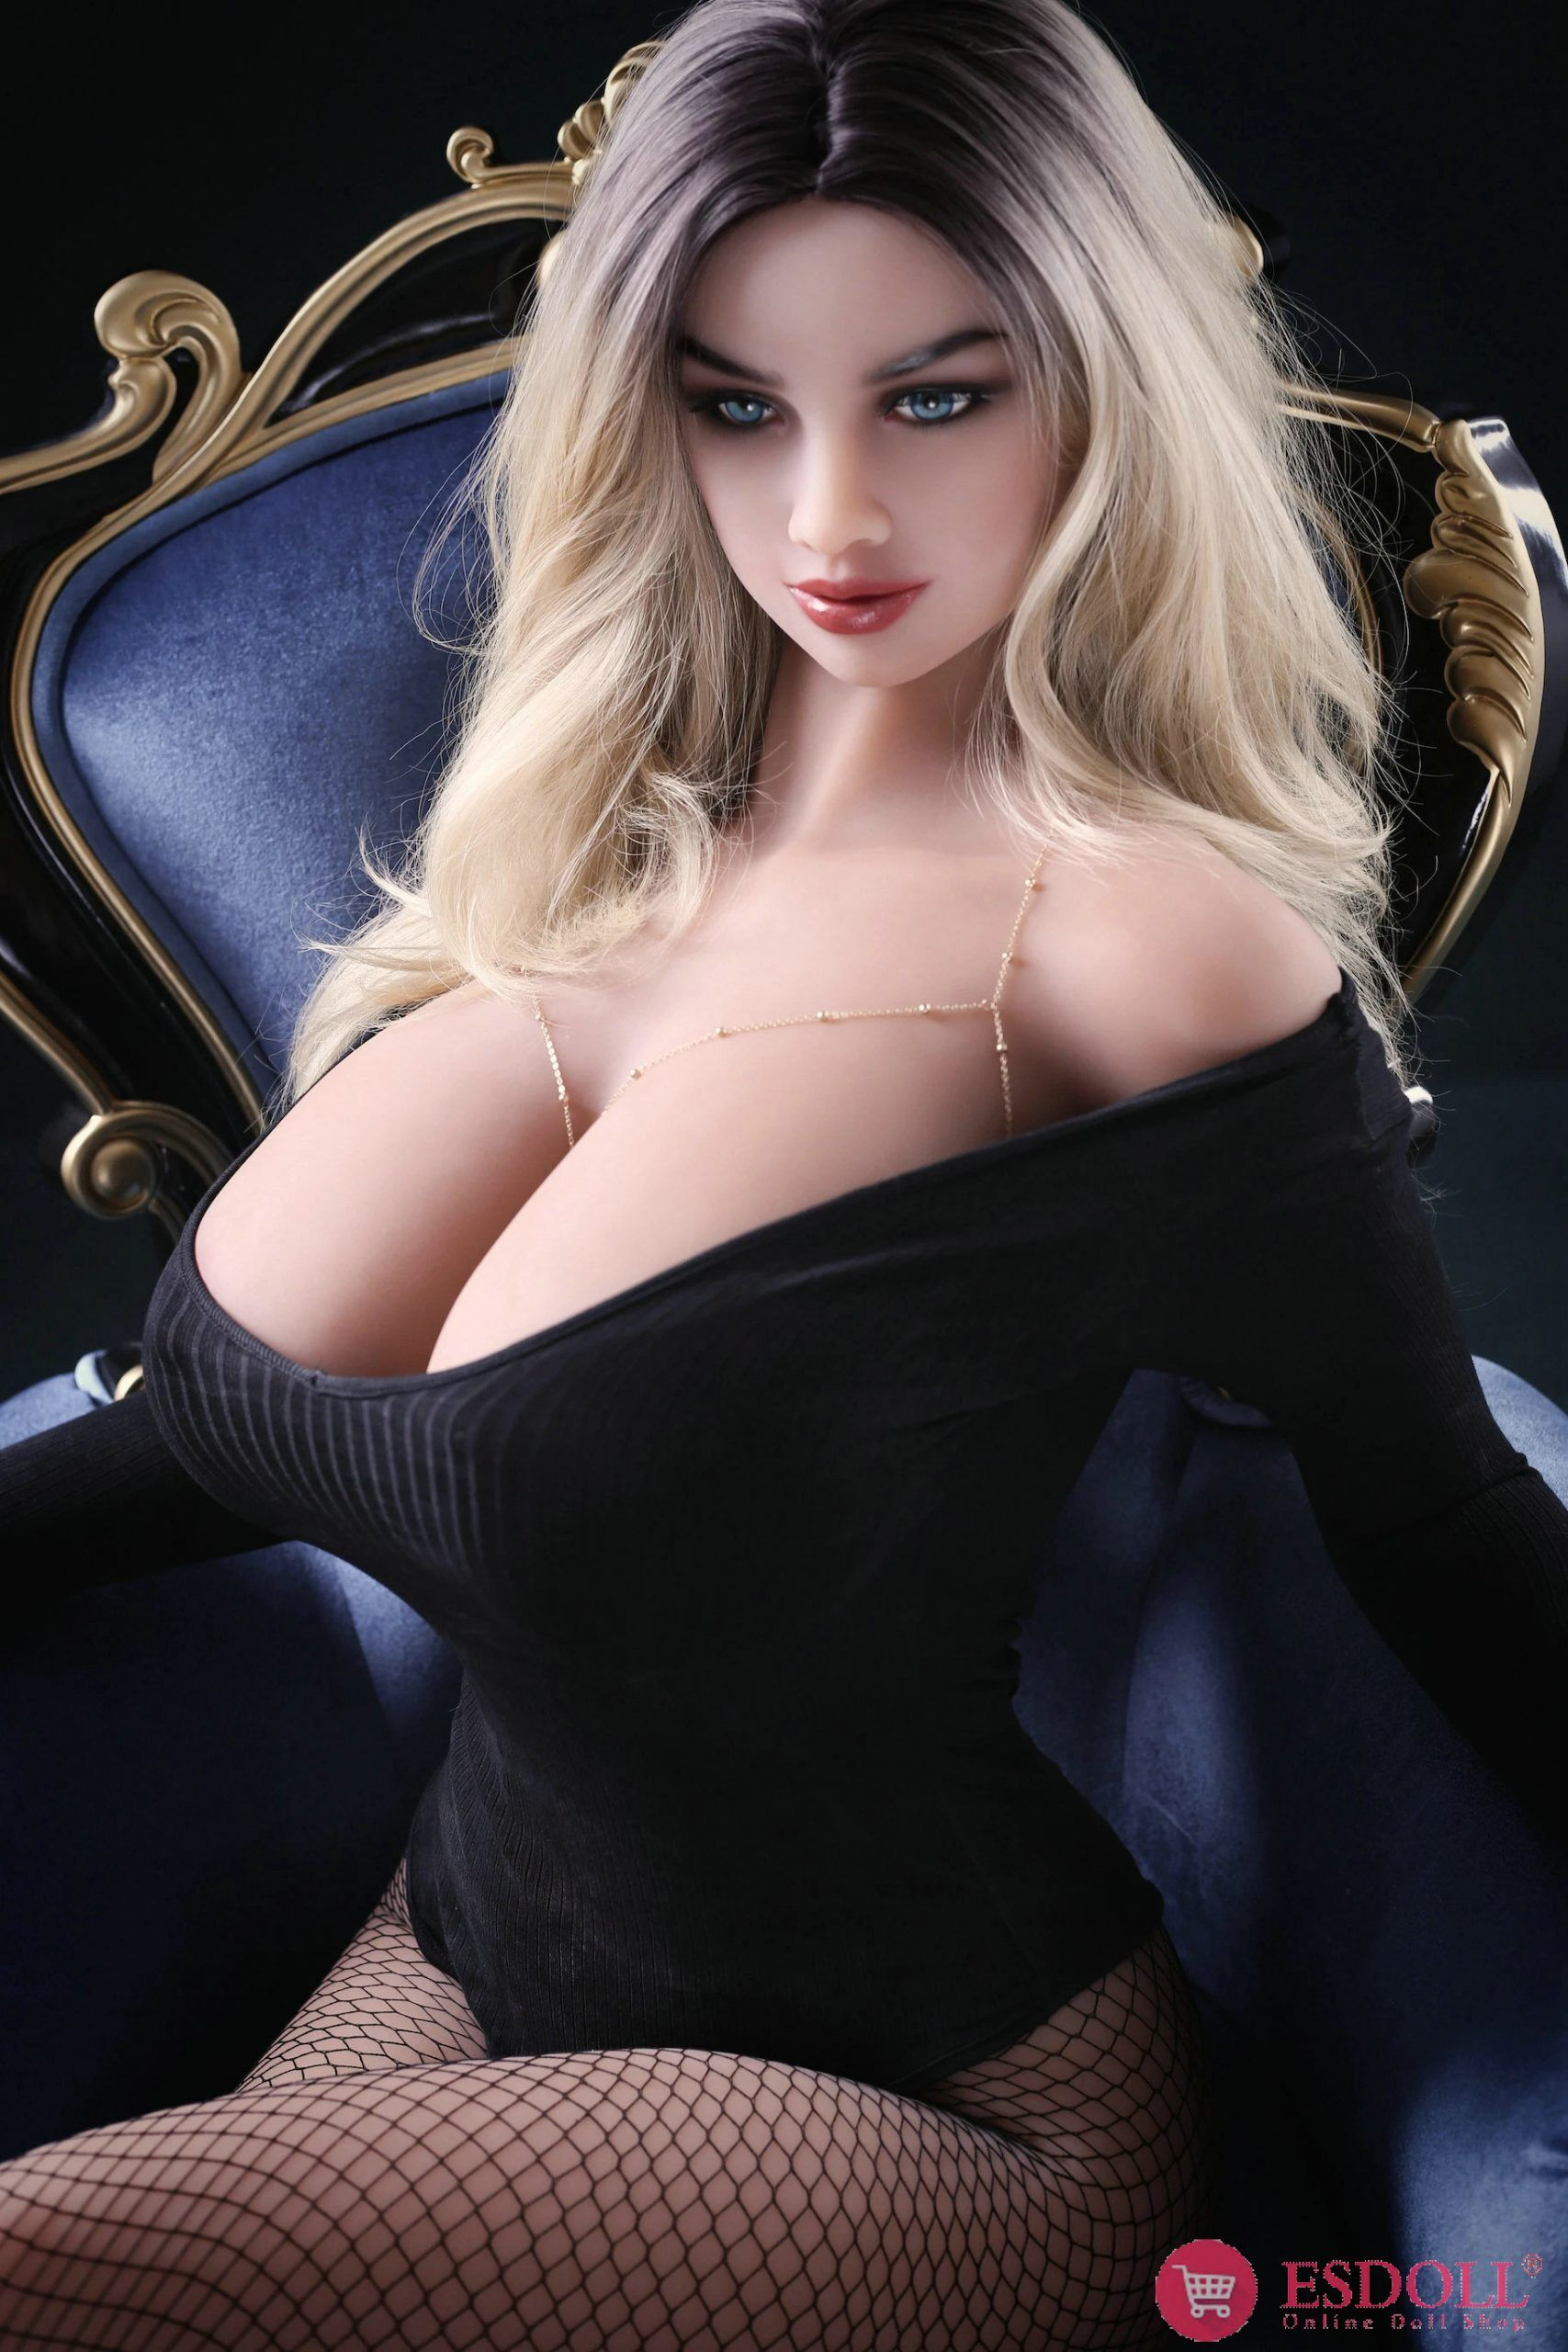 170cm Mega Boobs Love Doll Companion - Evelyn